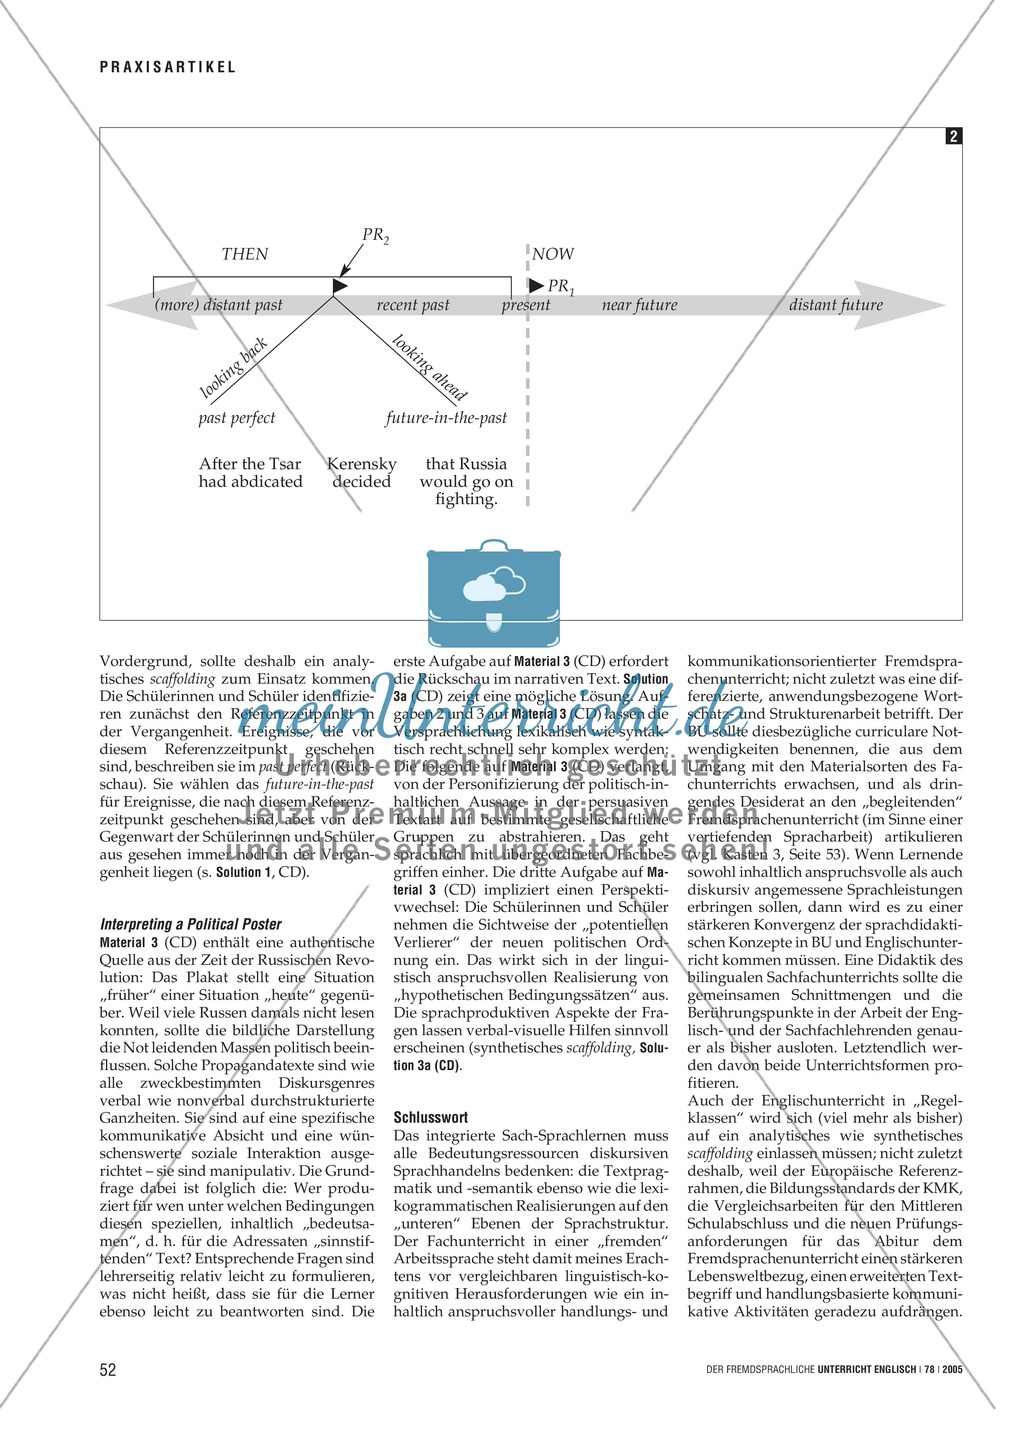 Chronological sequencing. Eine Methode zum integrierten Sach-Sprachlernen: Praxisartikel Preview 2